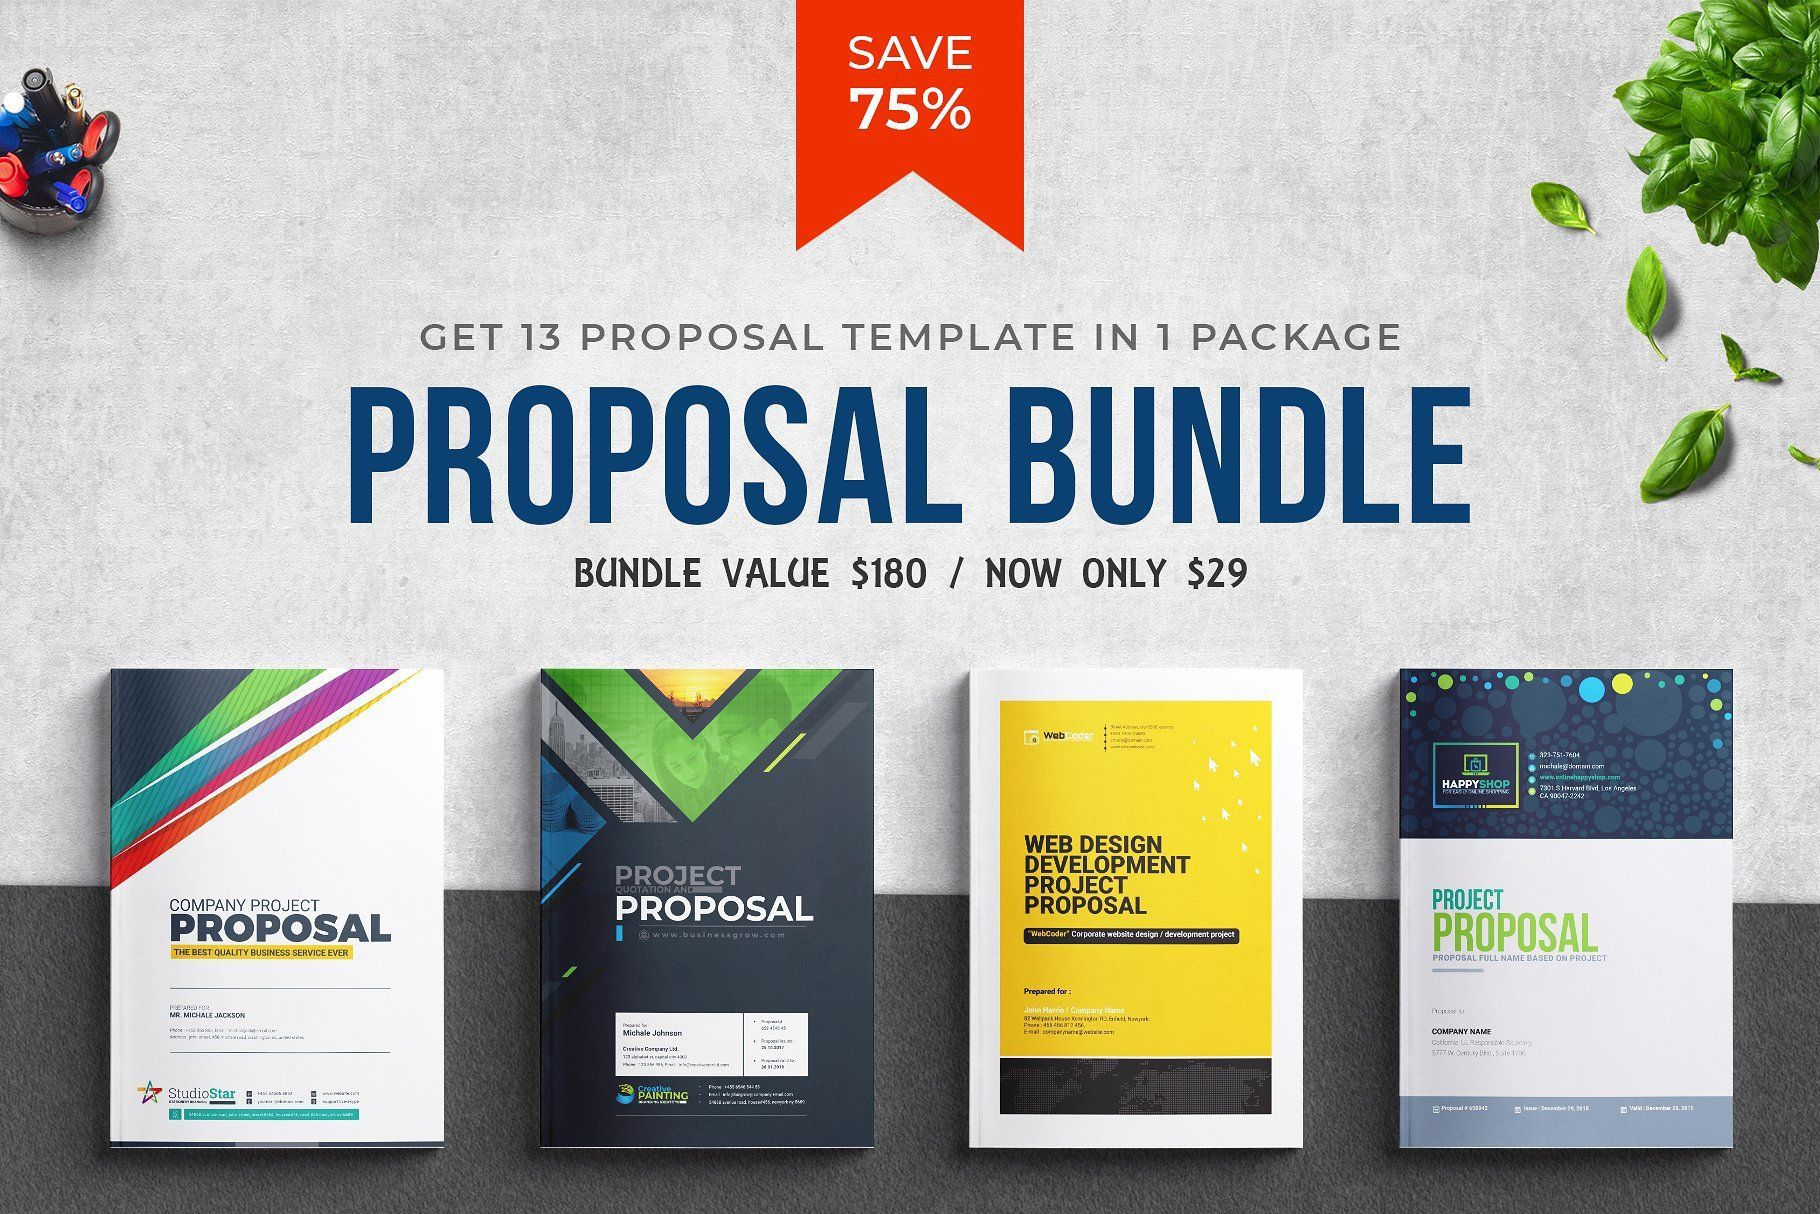 001 Formidable Graphic Design Proposal Template Word High Resolution Full